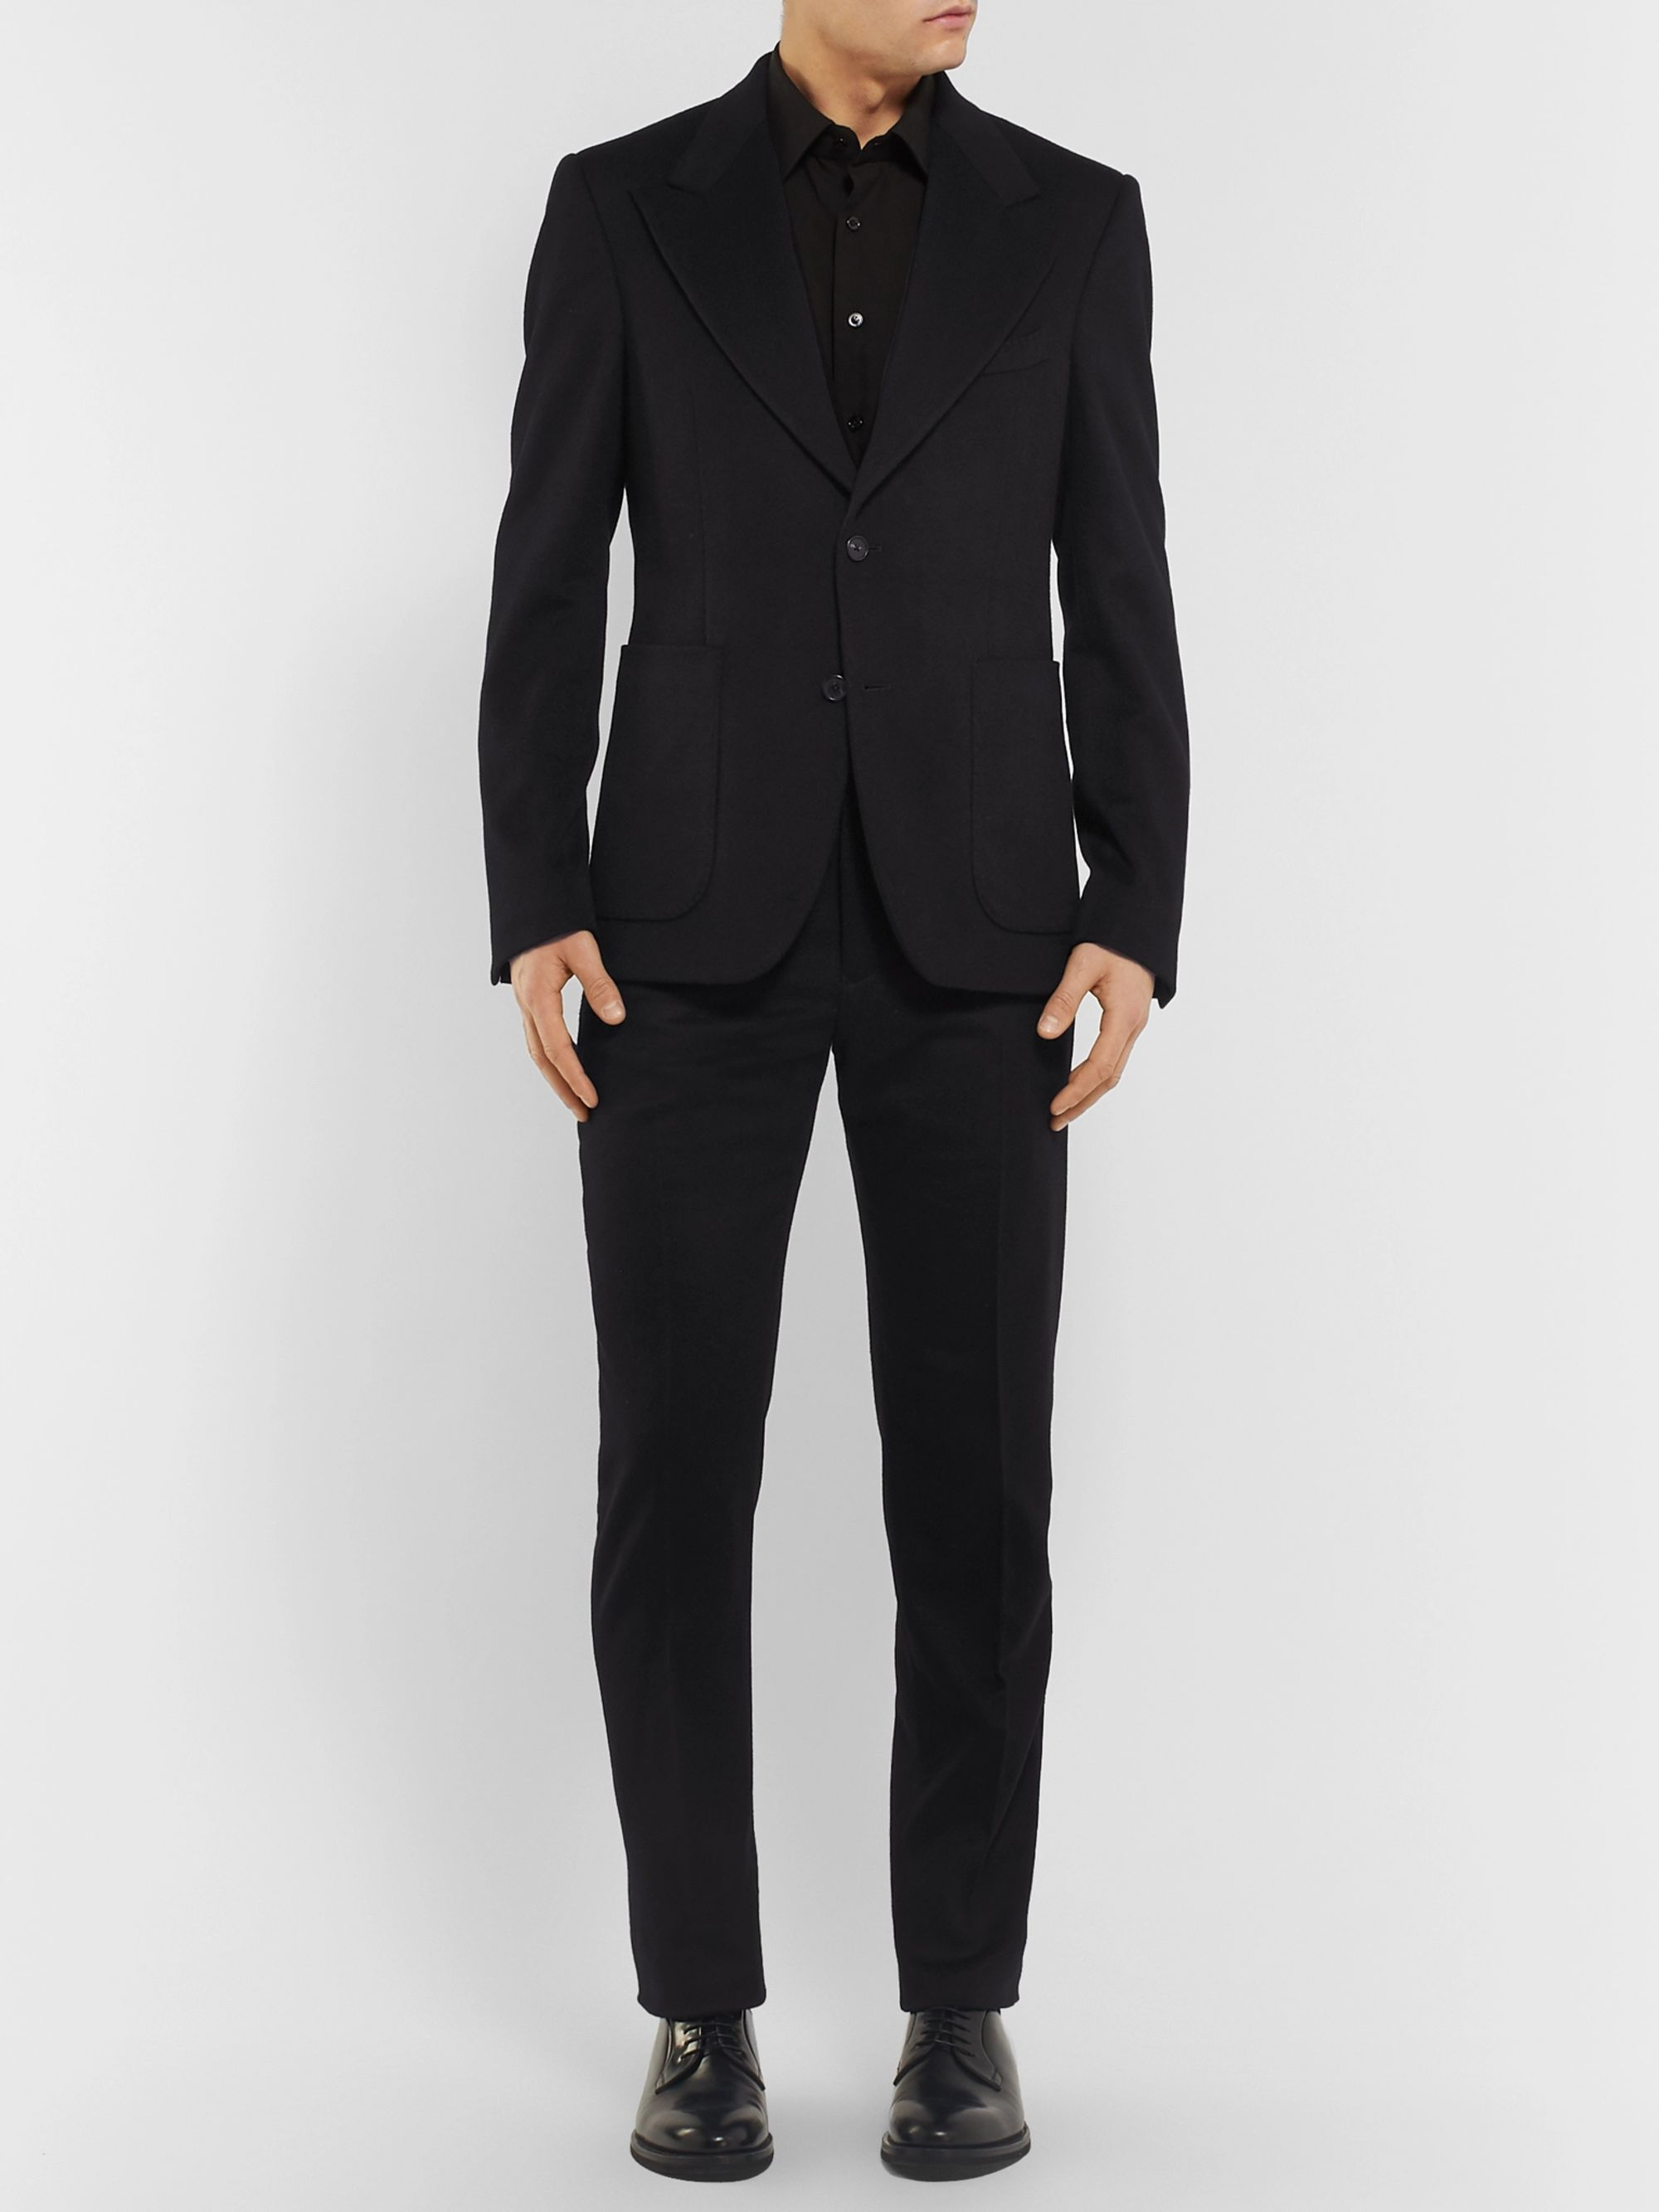 SALLE PRIVÉE Black Rocco Slim-Fit Cashmere Suit Trousers